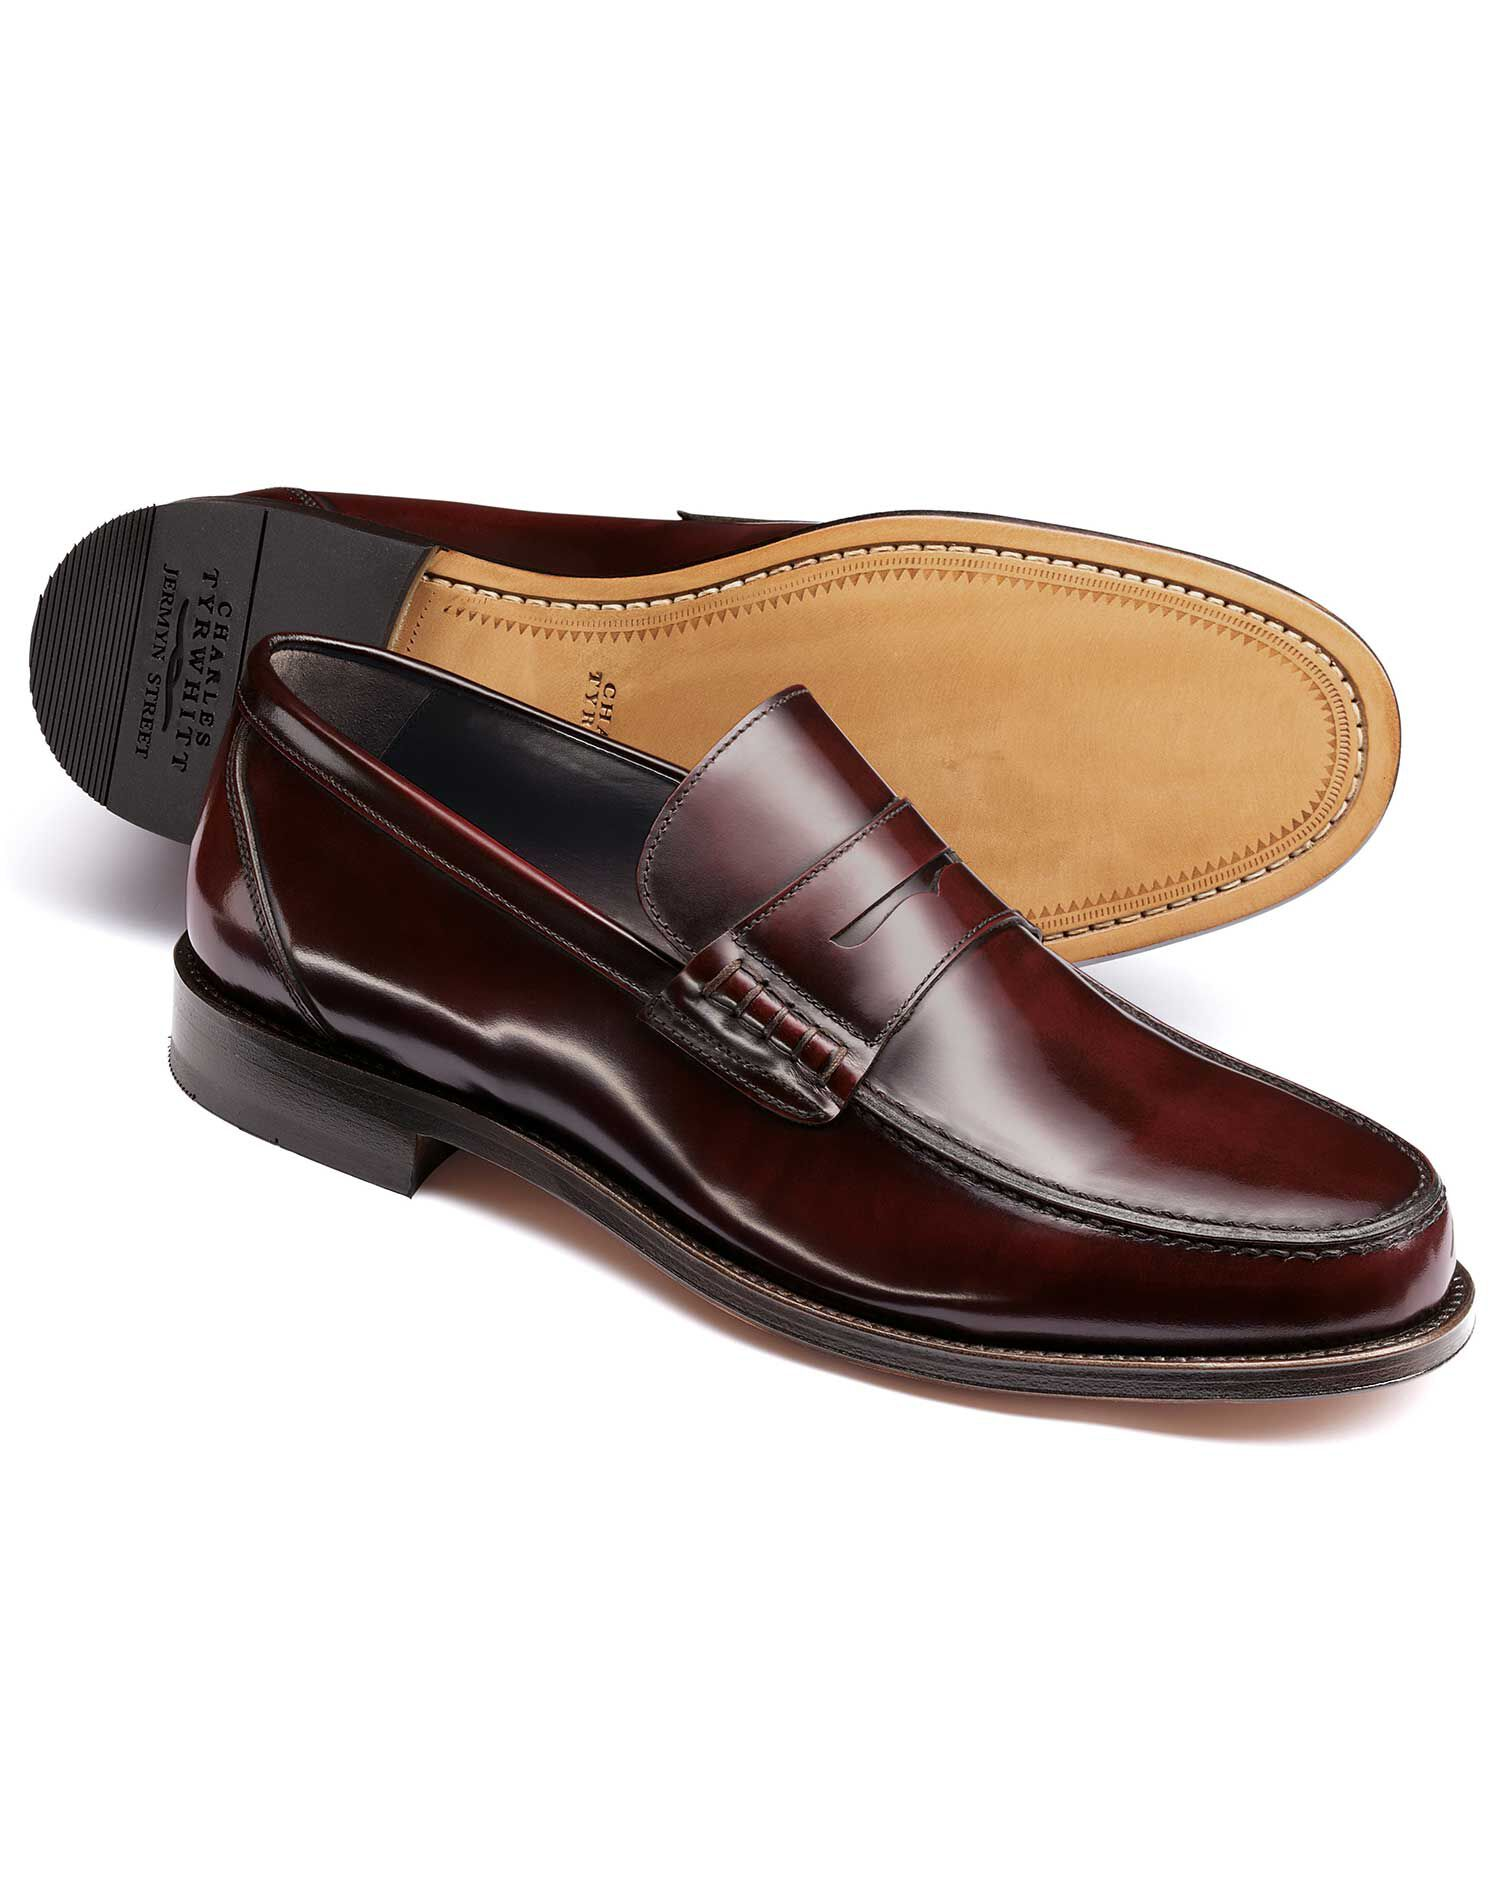 Burgundy Harlyn Loafers Size 6 R by Charles Tyrwhitt